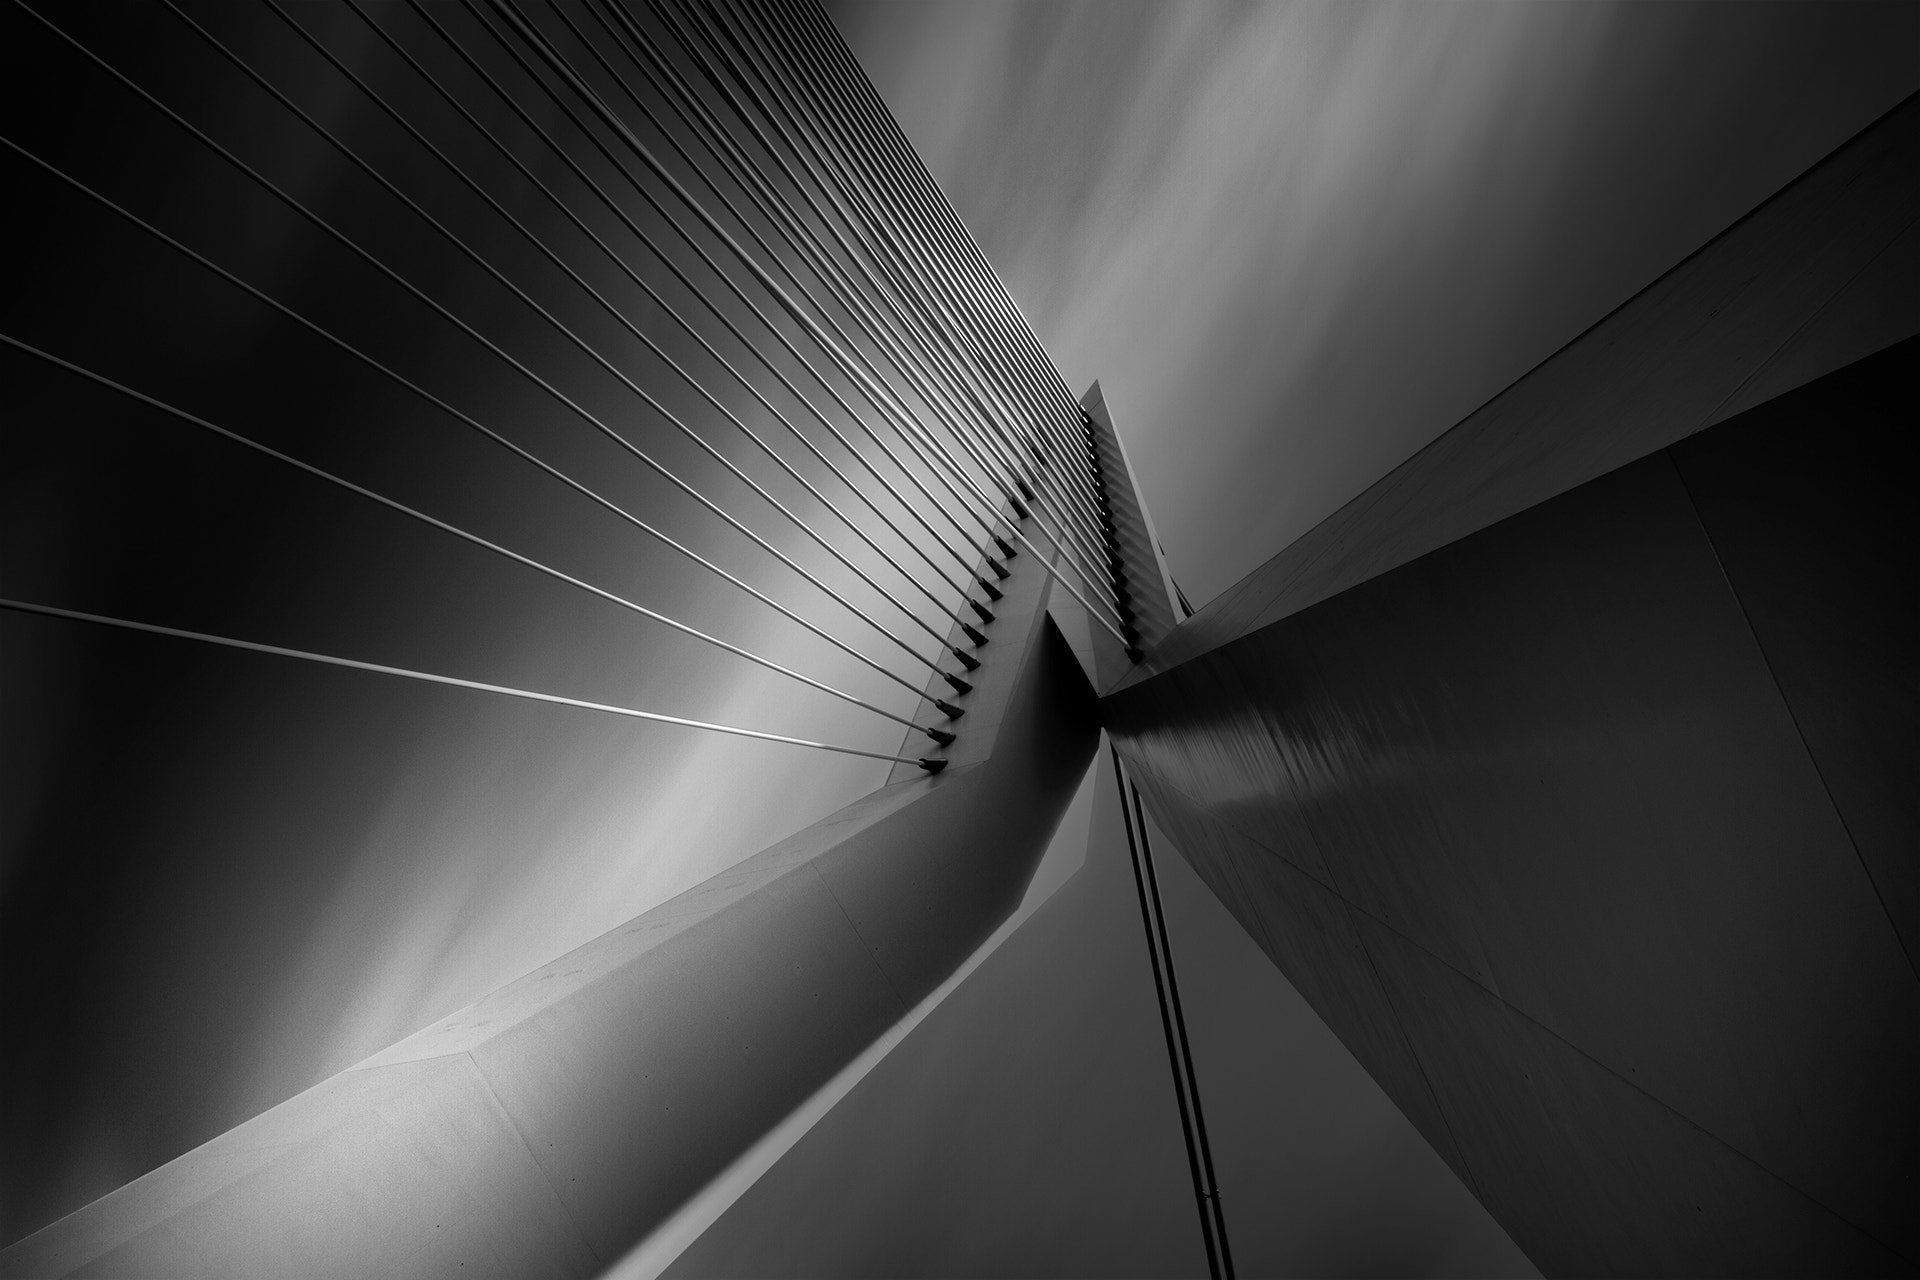 Photograph The bridge by Kees Smans on 500px